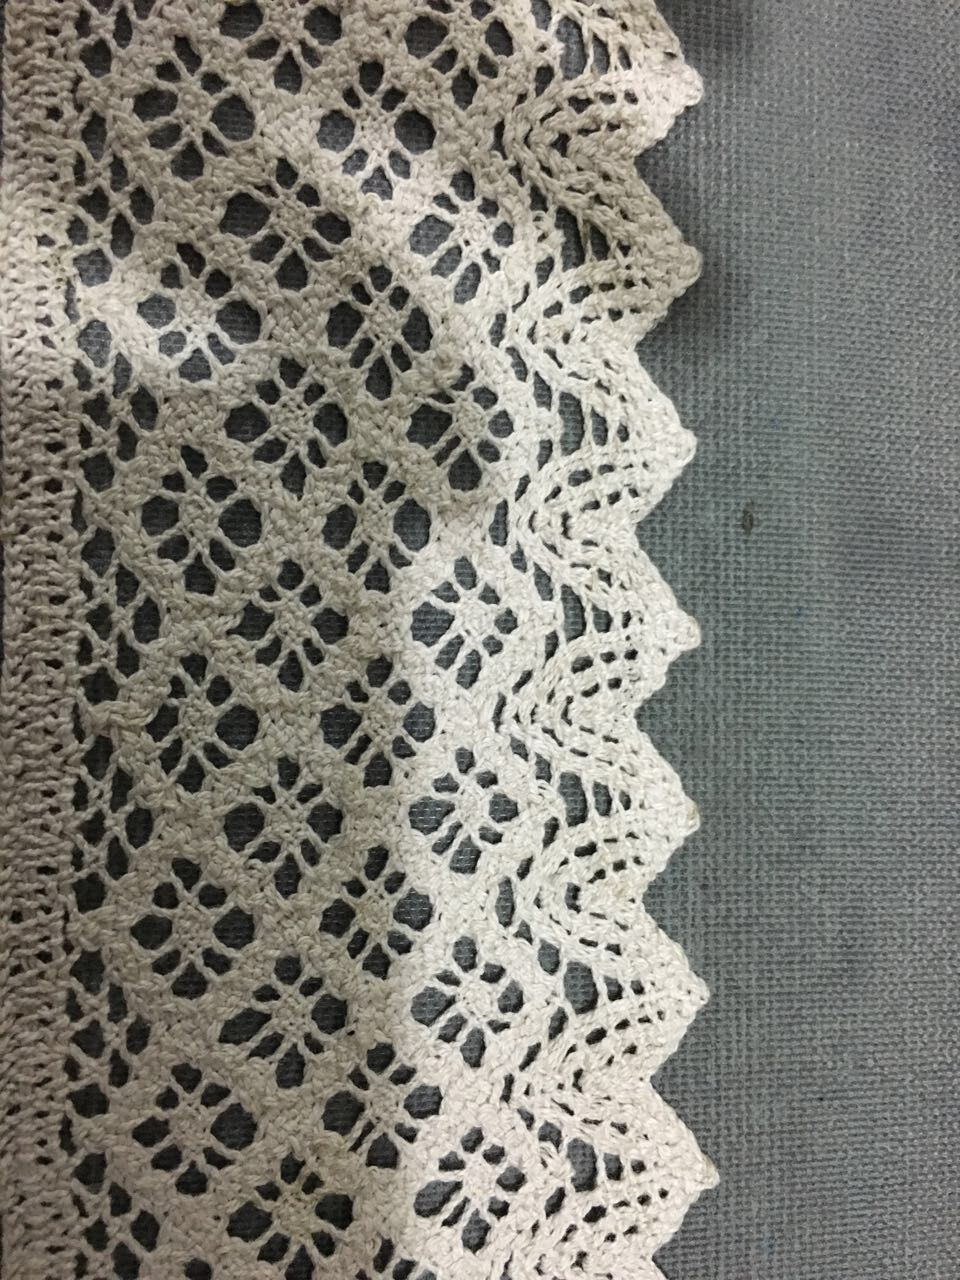 China Crochet Cotton Lace Trim for Garments in Portugal Market ...